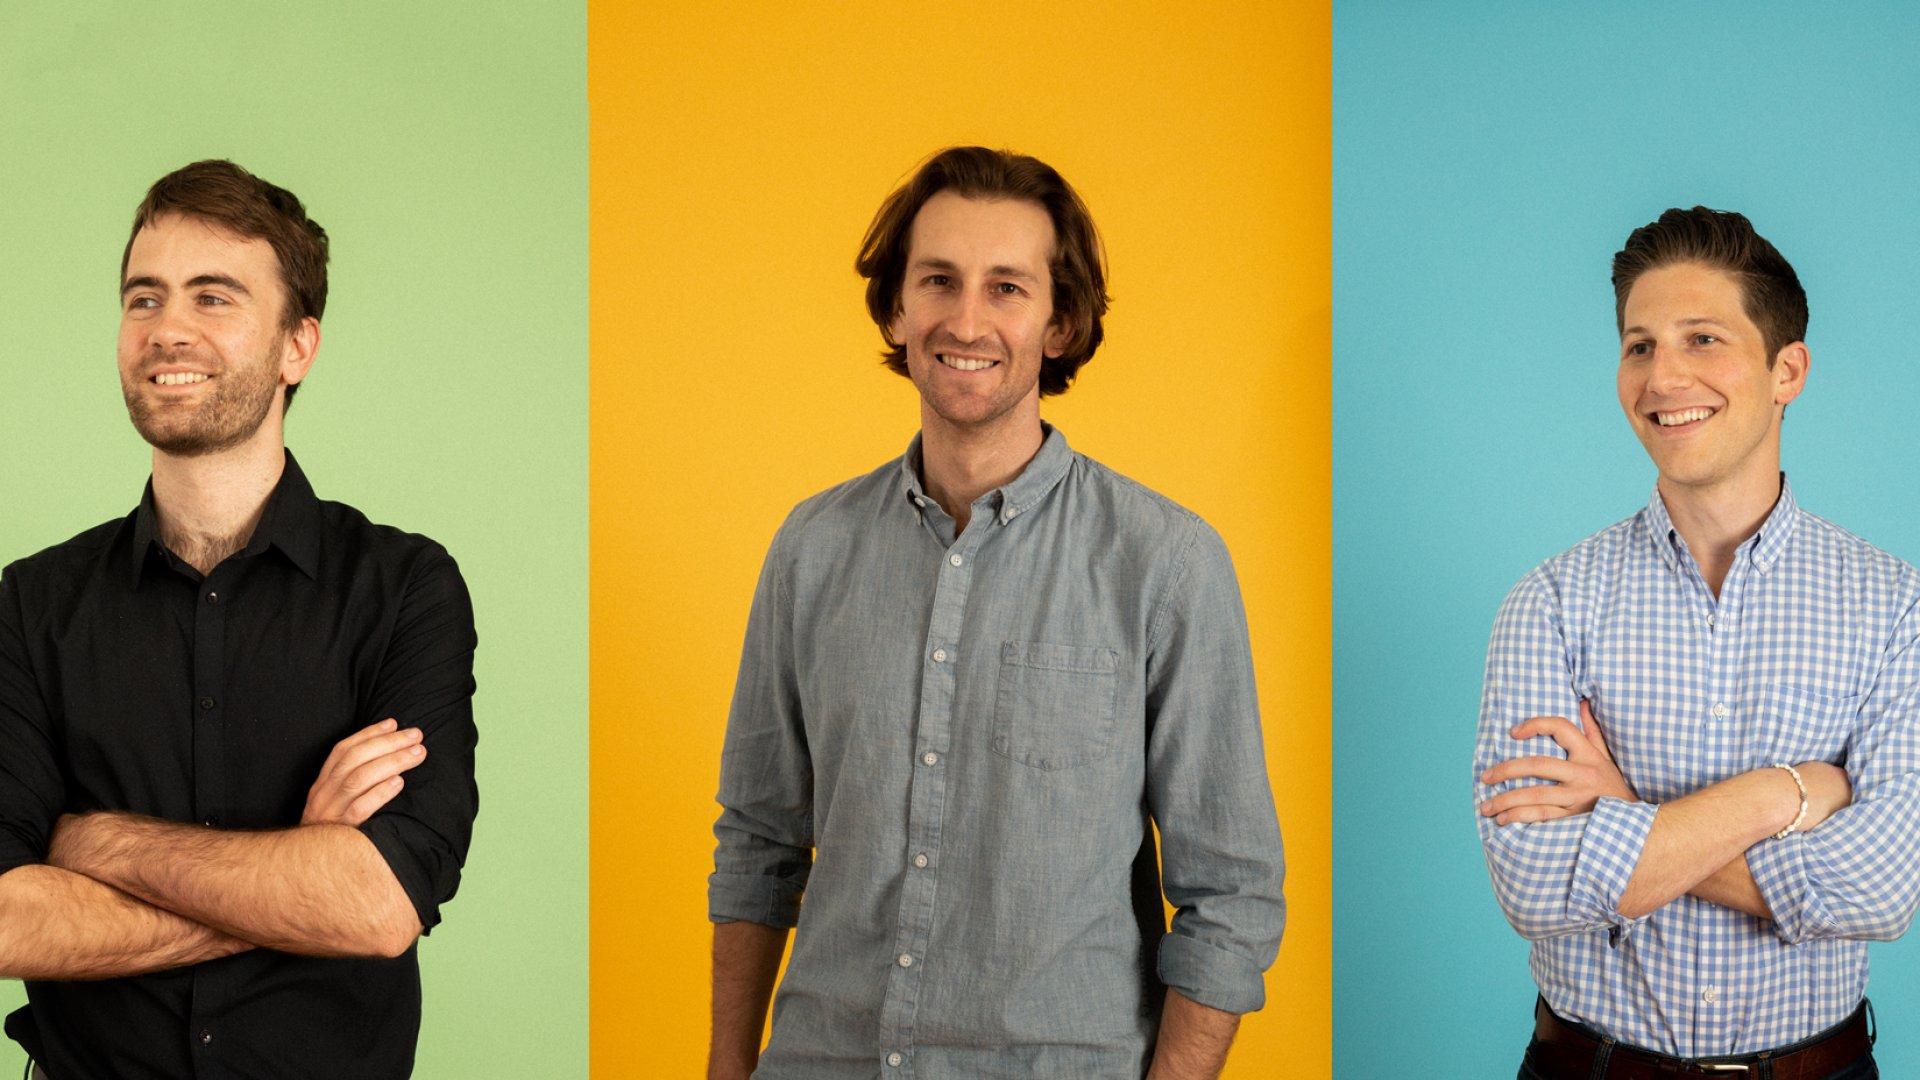 From left: Afresh co-founders Volodymyr Kuleshov, Nathan Fenner, and Matt Schwartz.